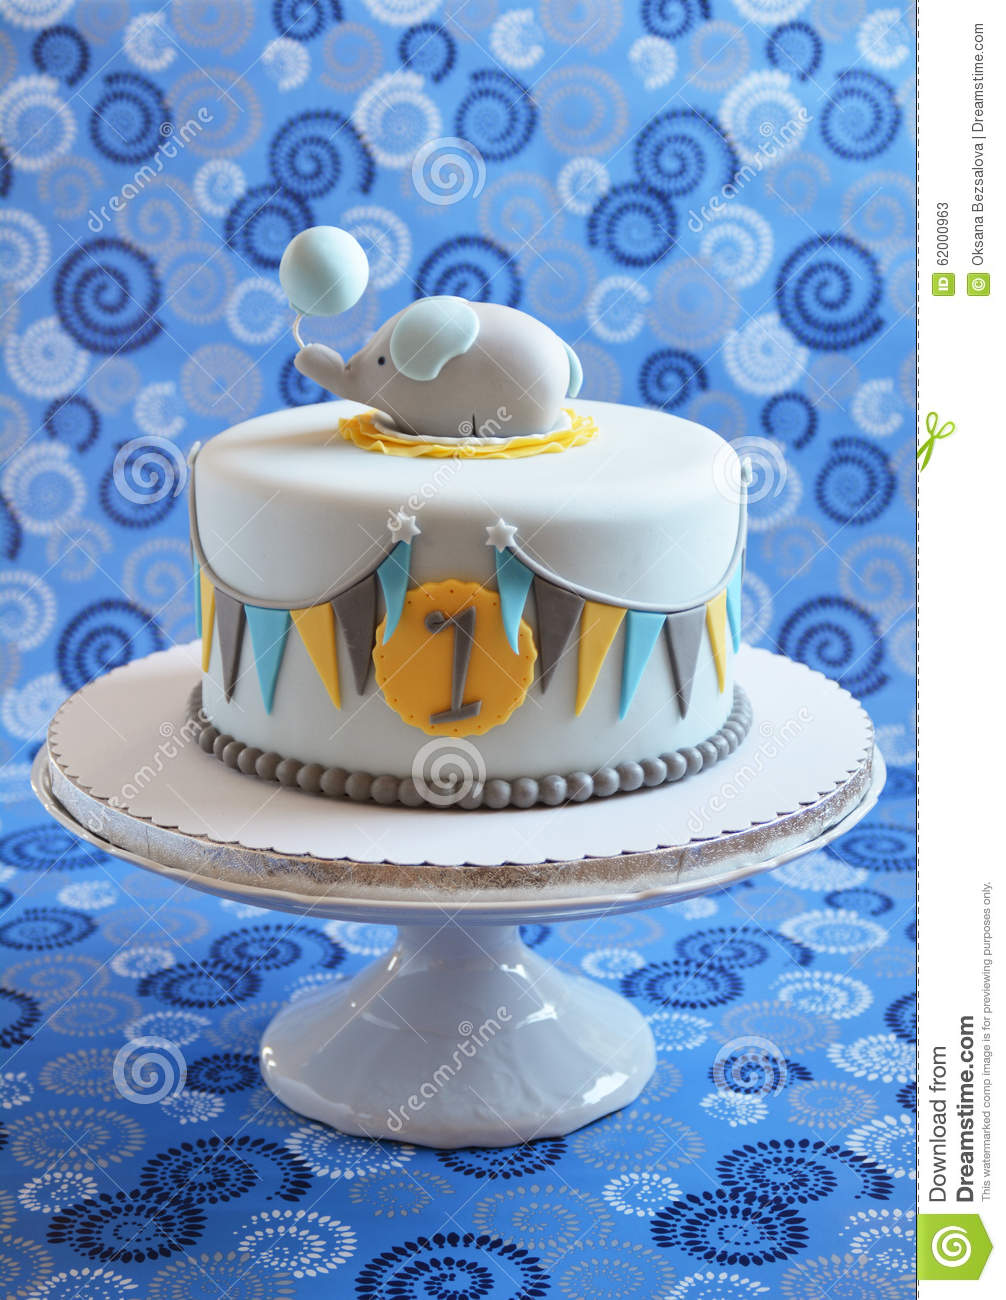 Cute Birthday Cake Decorated With Fondant Flags And Small Elephant